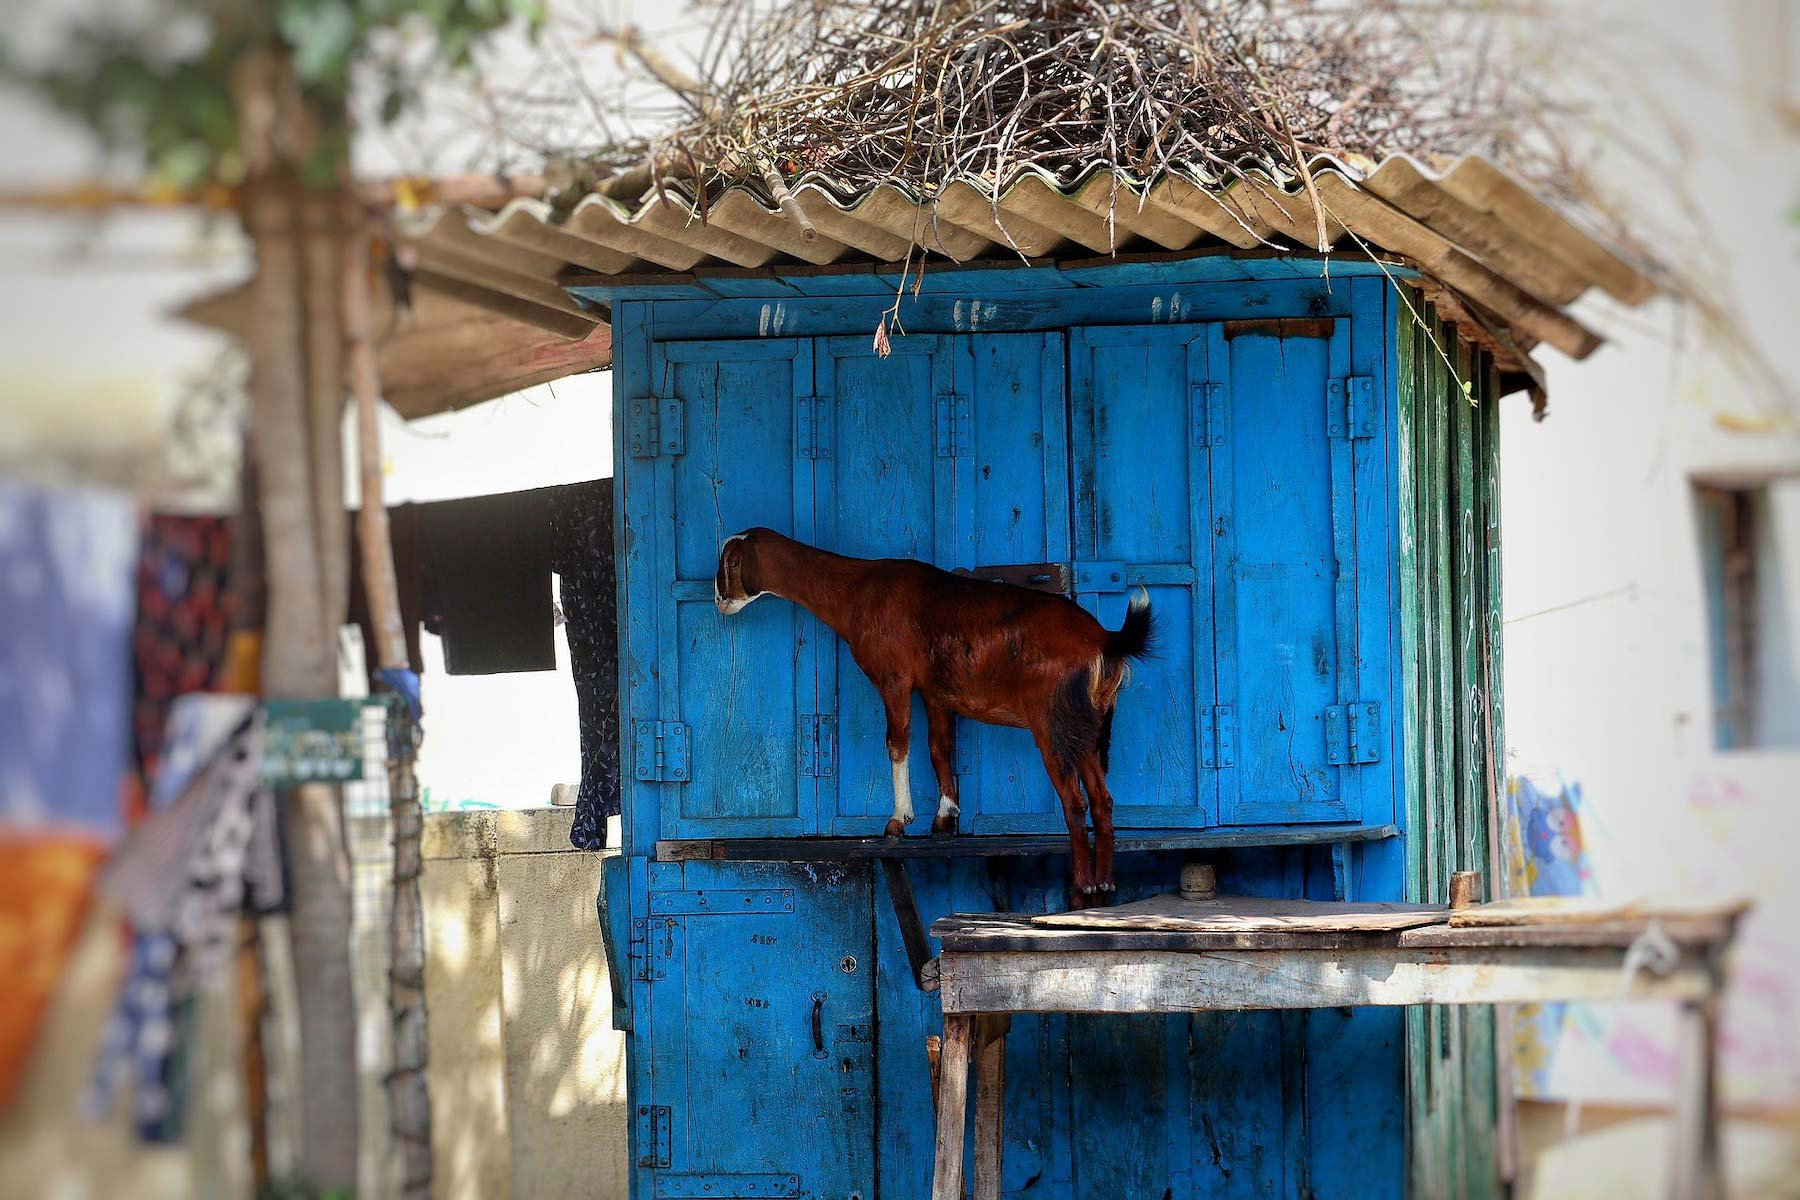 A goat in India